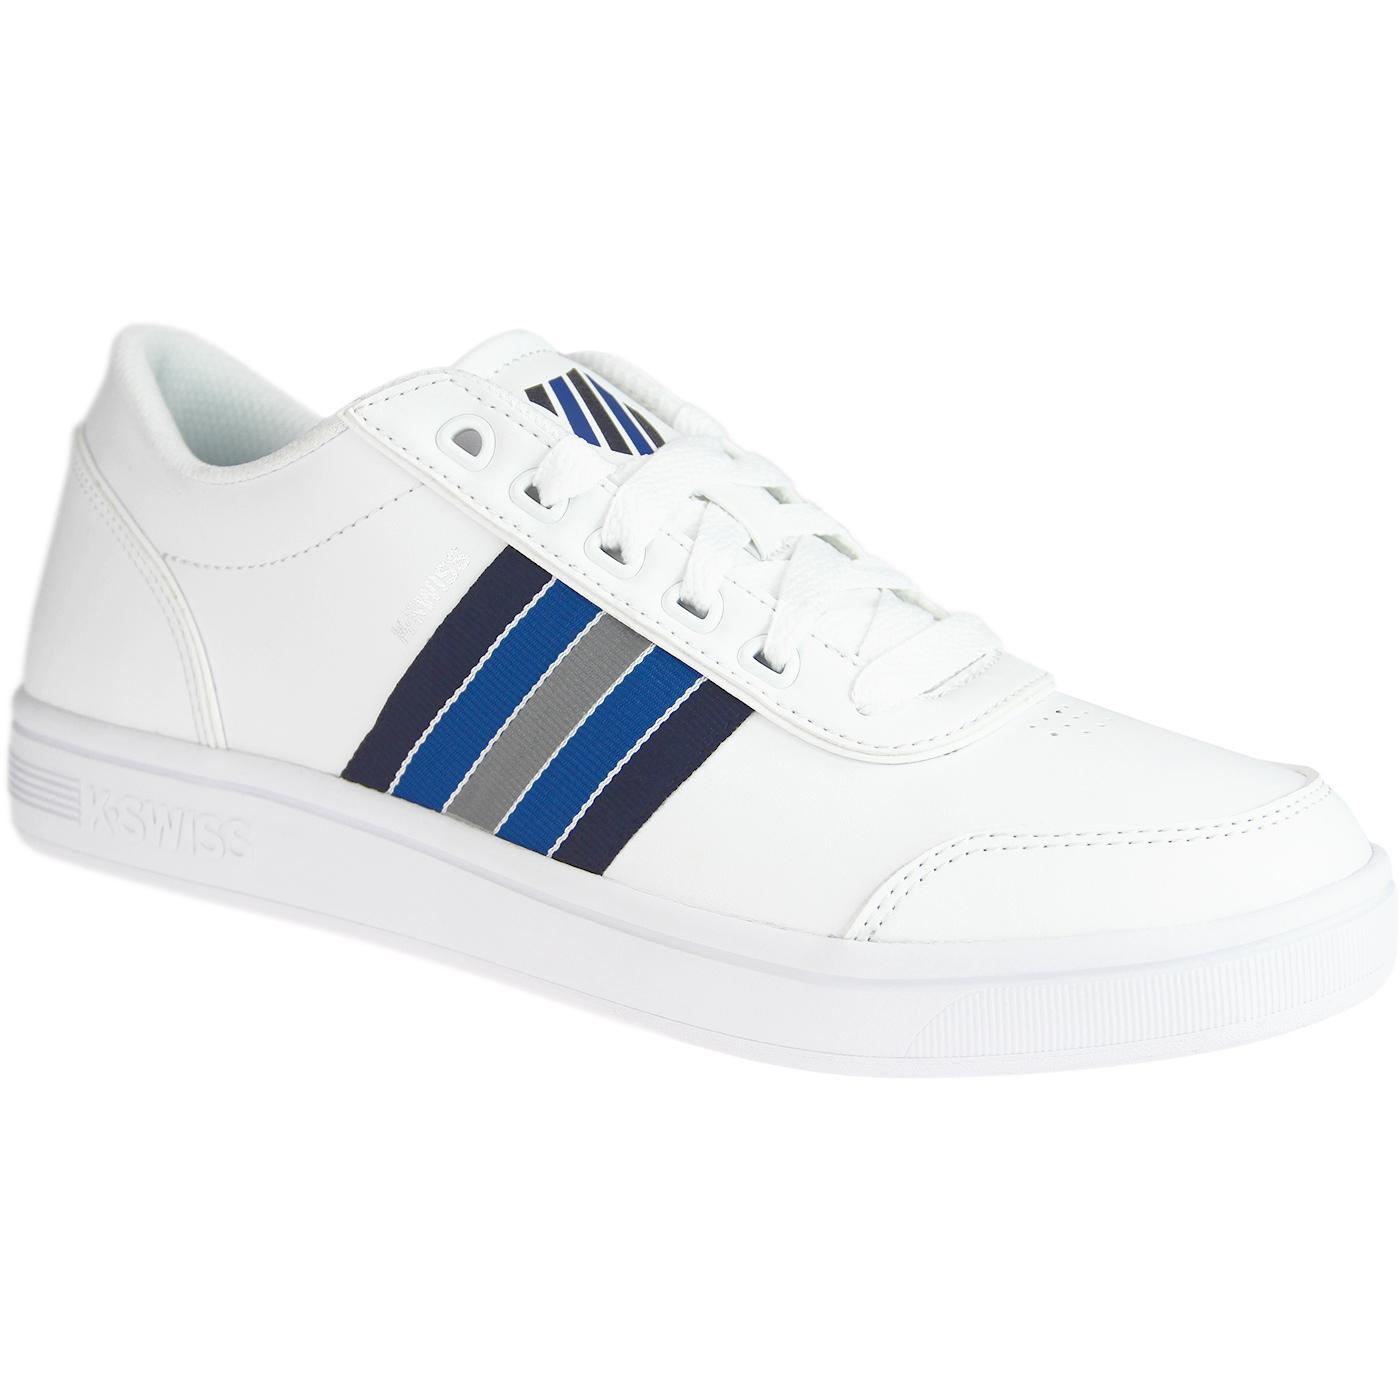 Court Clarkson K-SWISS Retro Tennis Trainers (W/P)